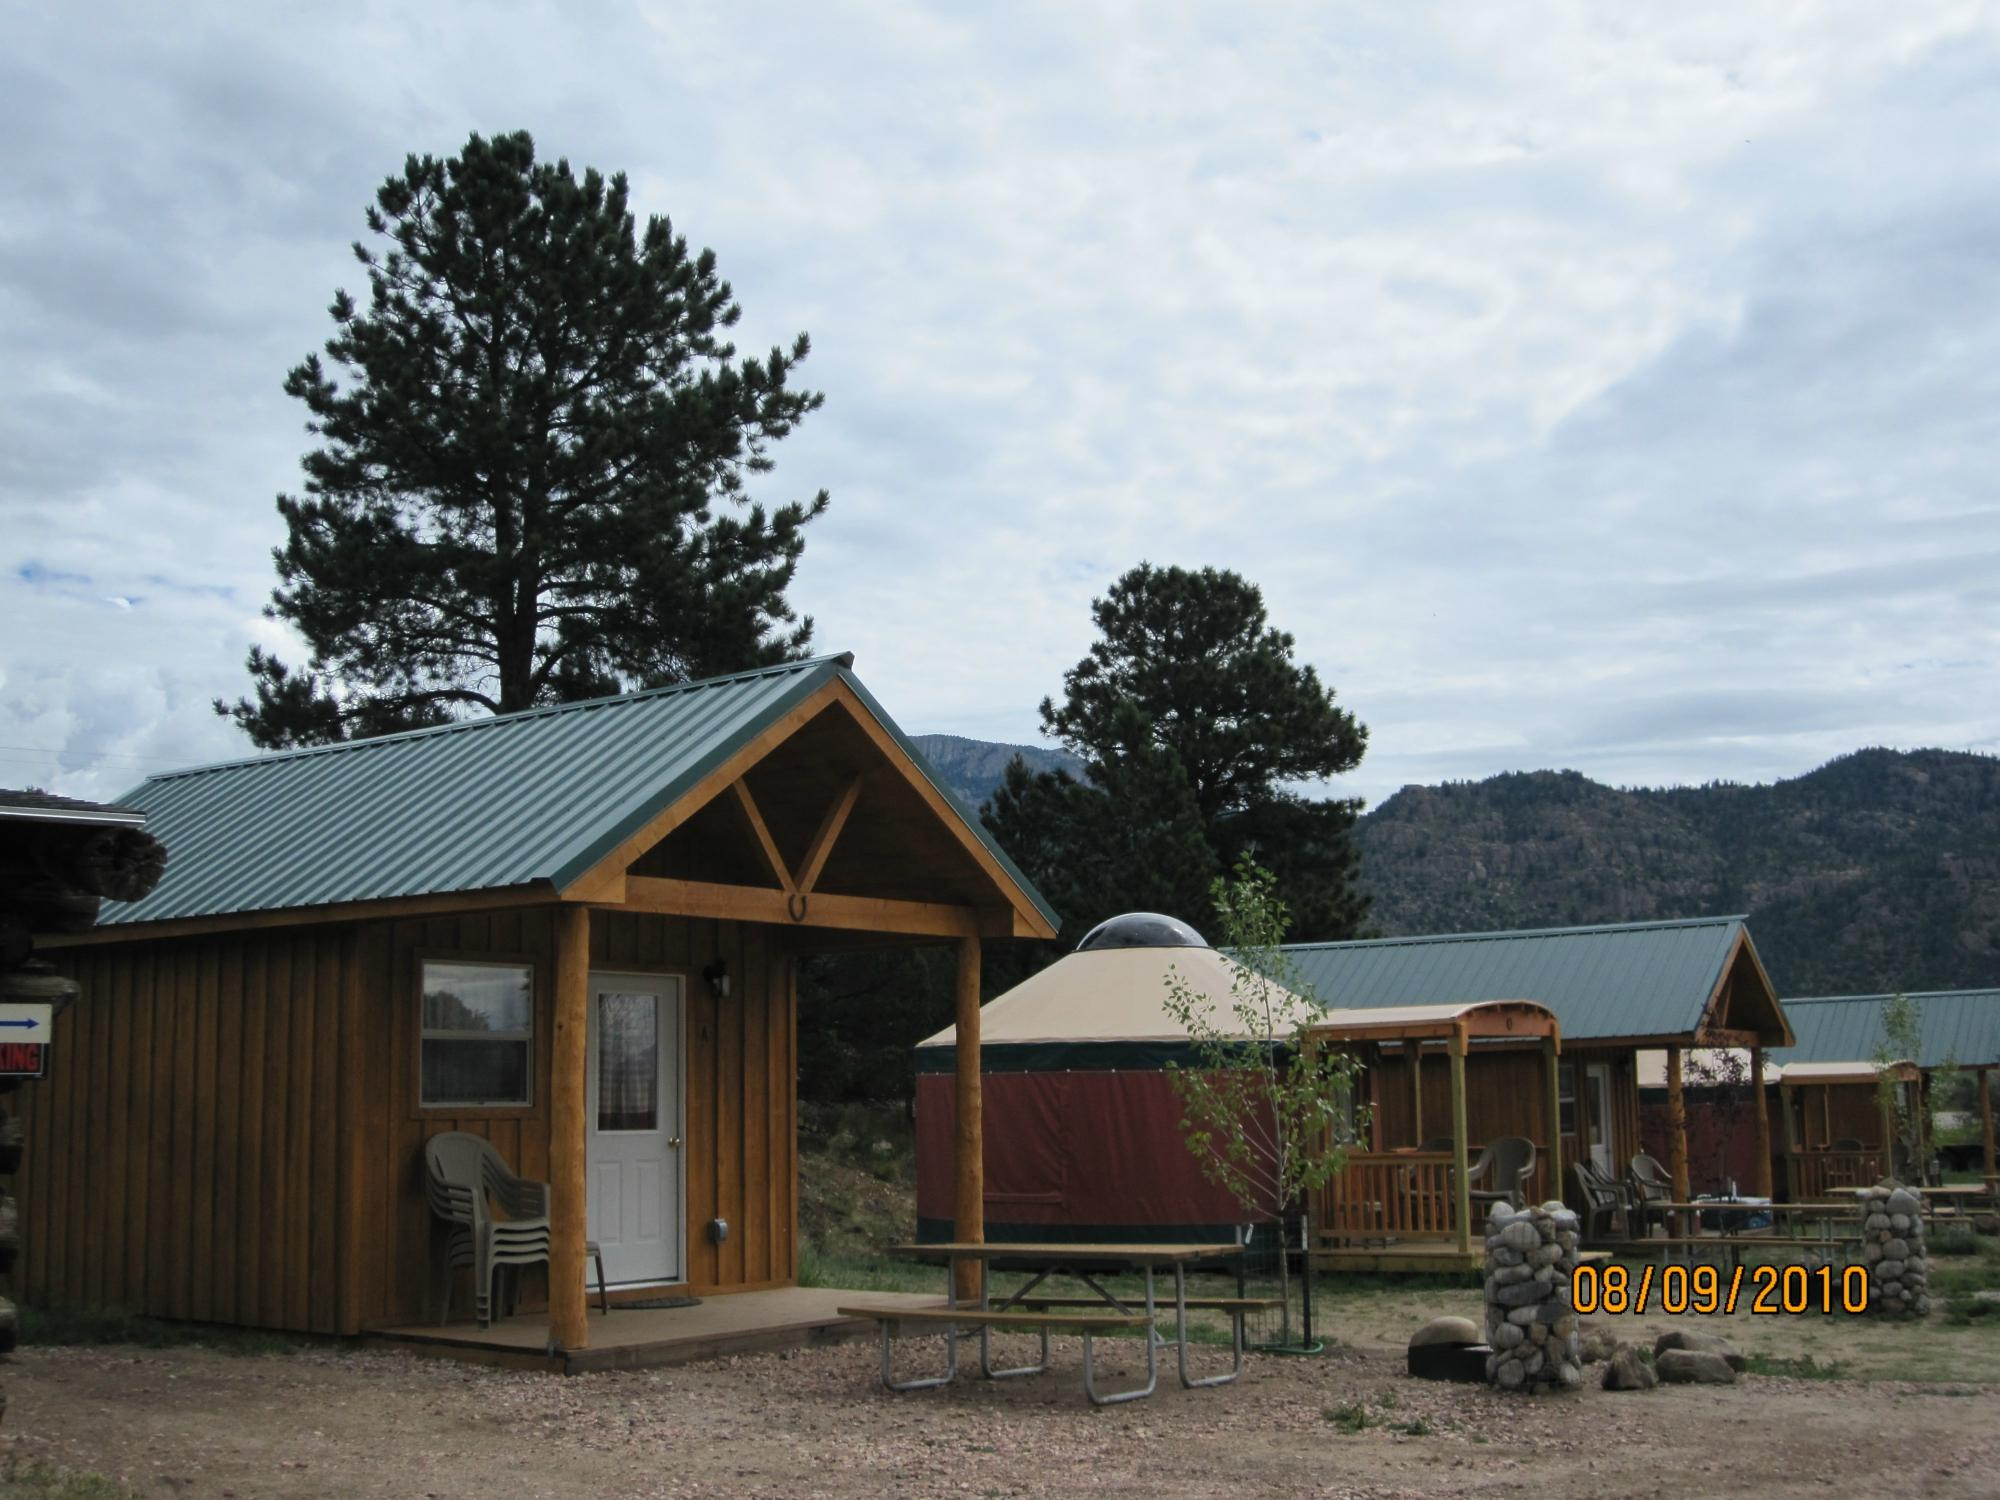 Arrowhead Point Campground & Cabins